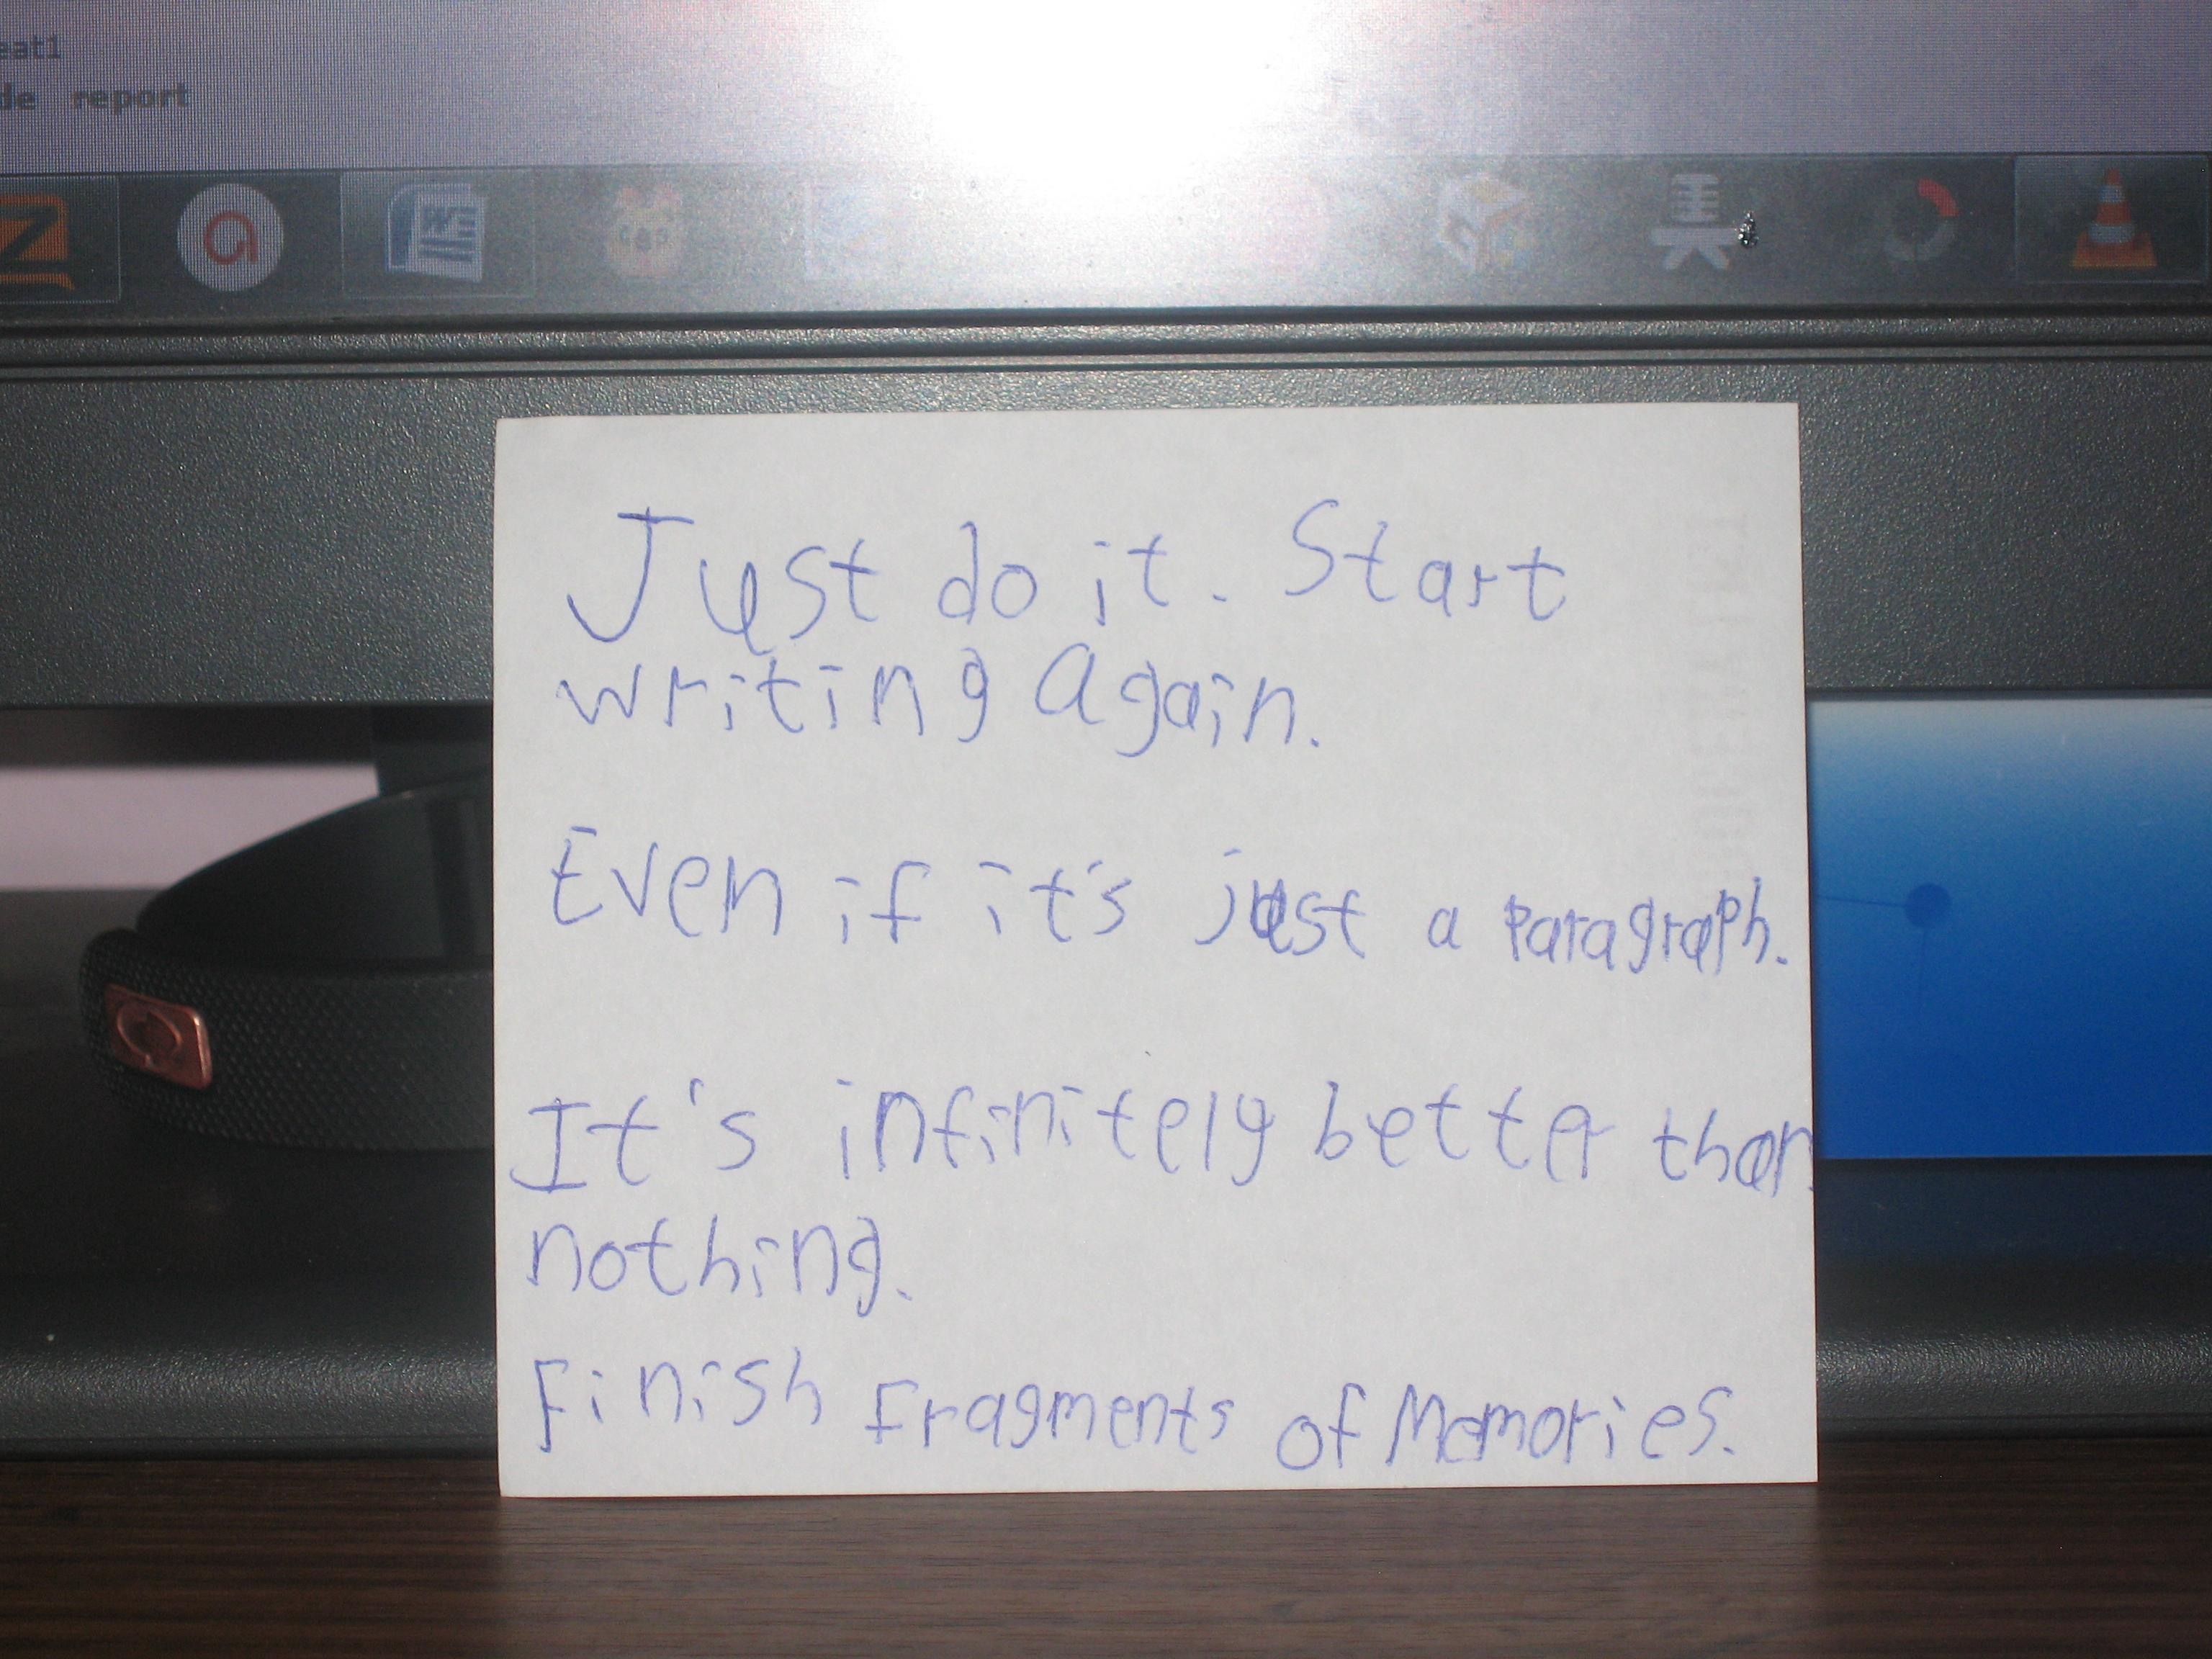 A little motivational slip i wrote for myself, telling me to just start writing my book. [image]